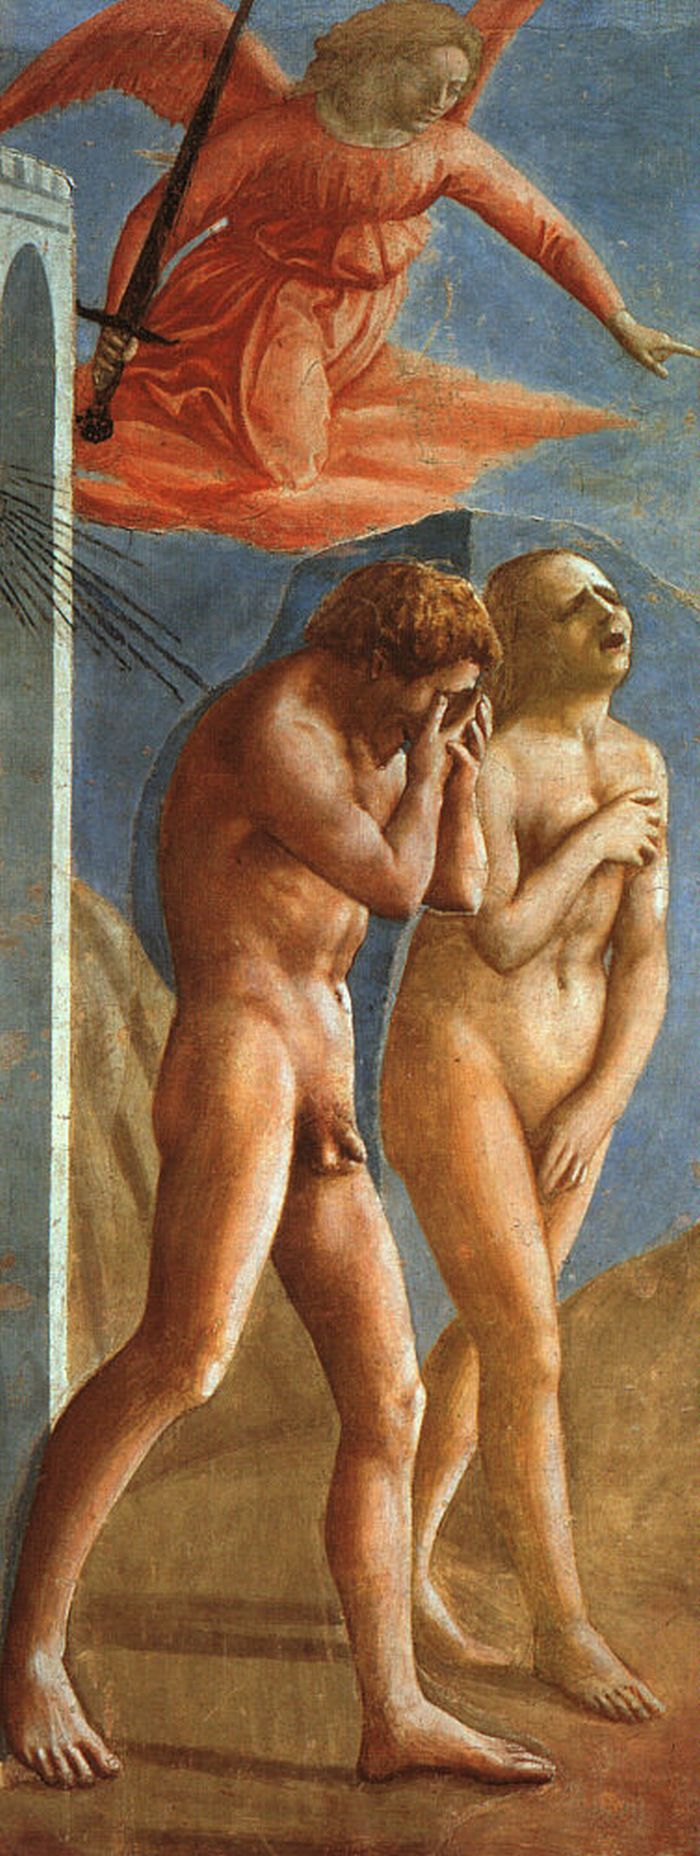 a comparison of the beginning of school to the expulsion of adam and eve from the garden of eden in